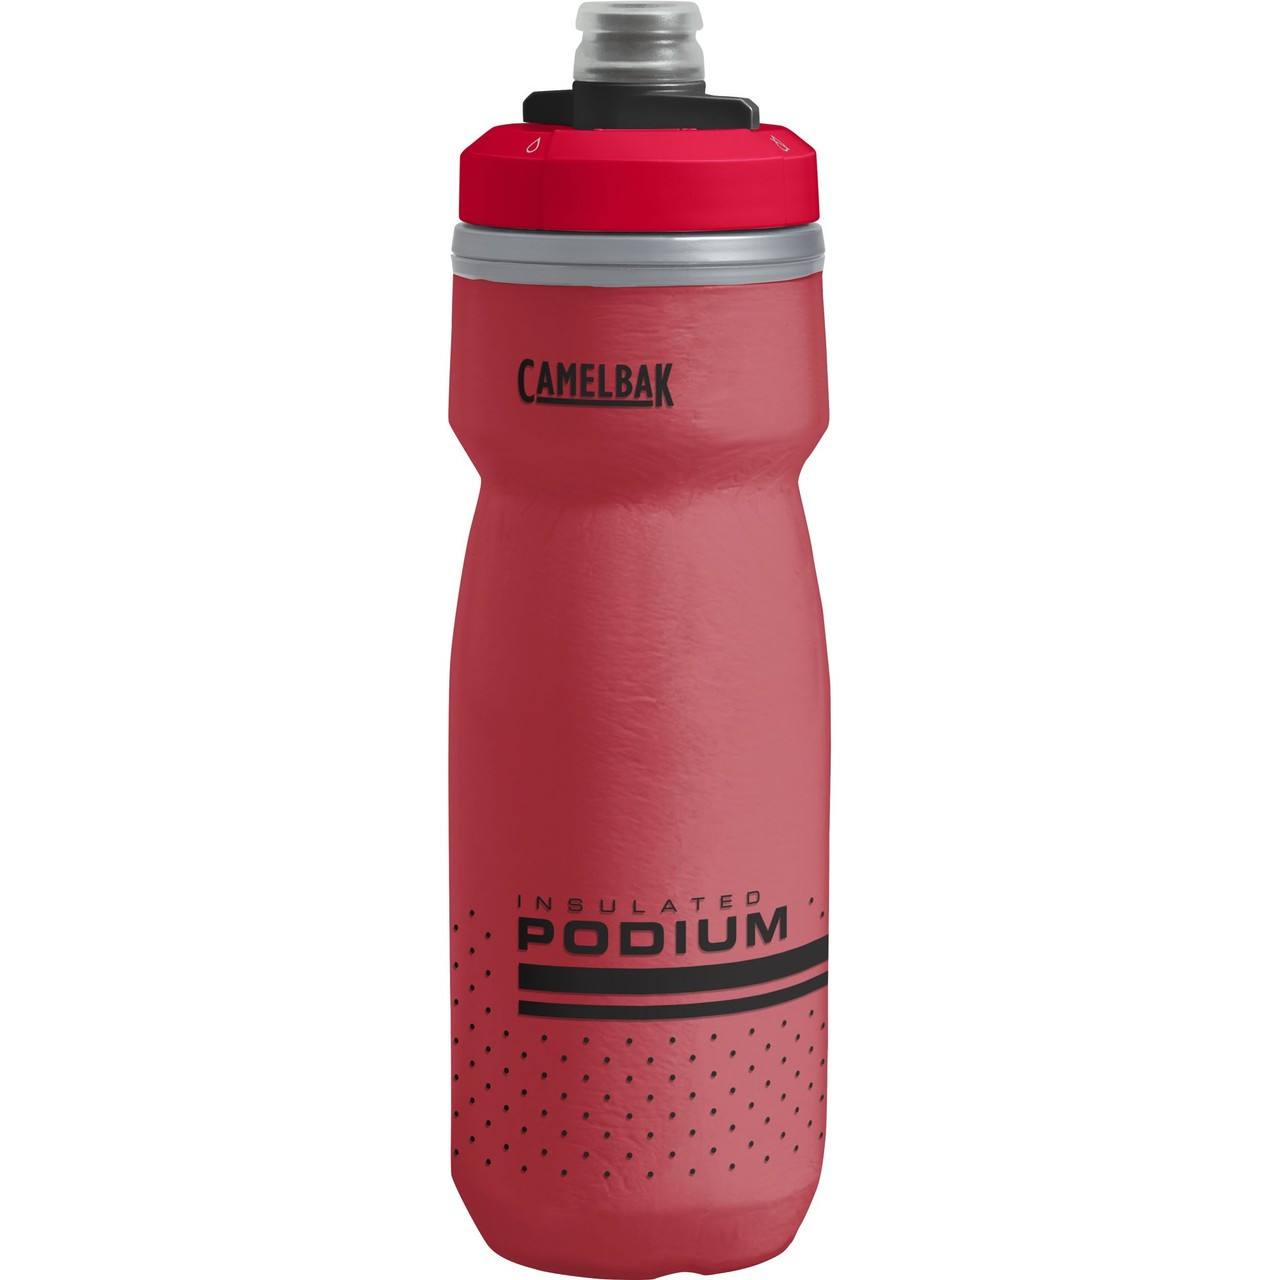 Camelbak Podium Chill 21 oz. Insulated Water Bottle - 2019 price